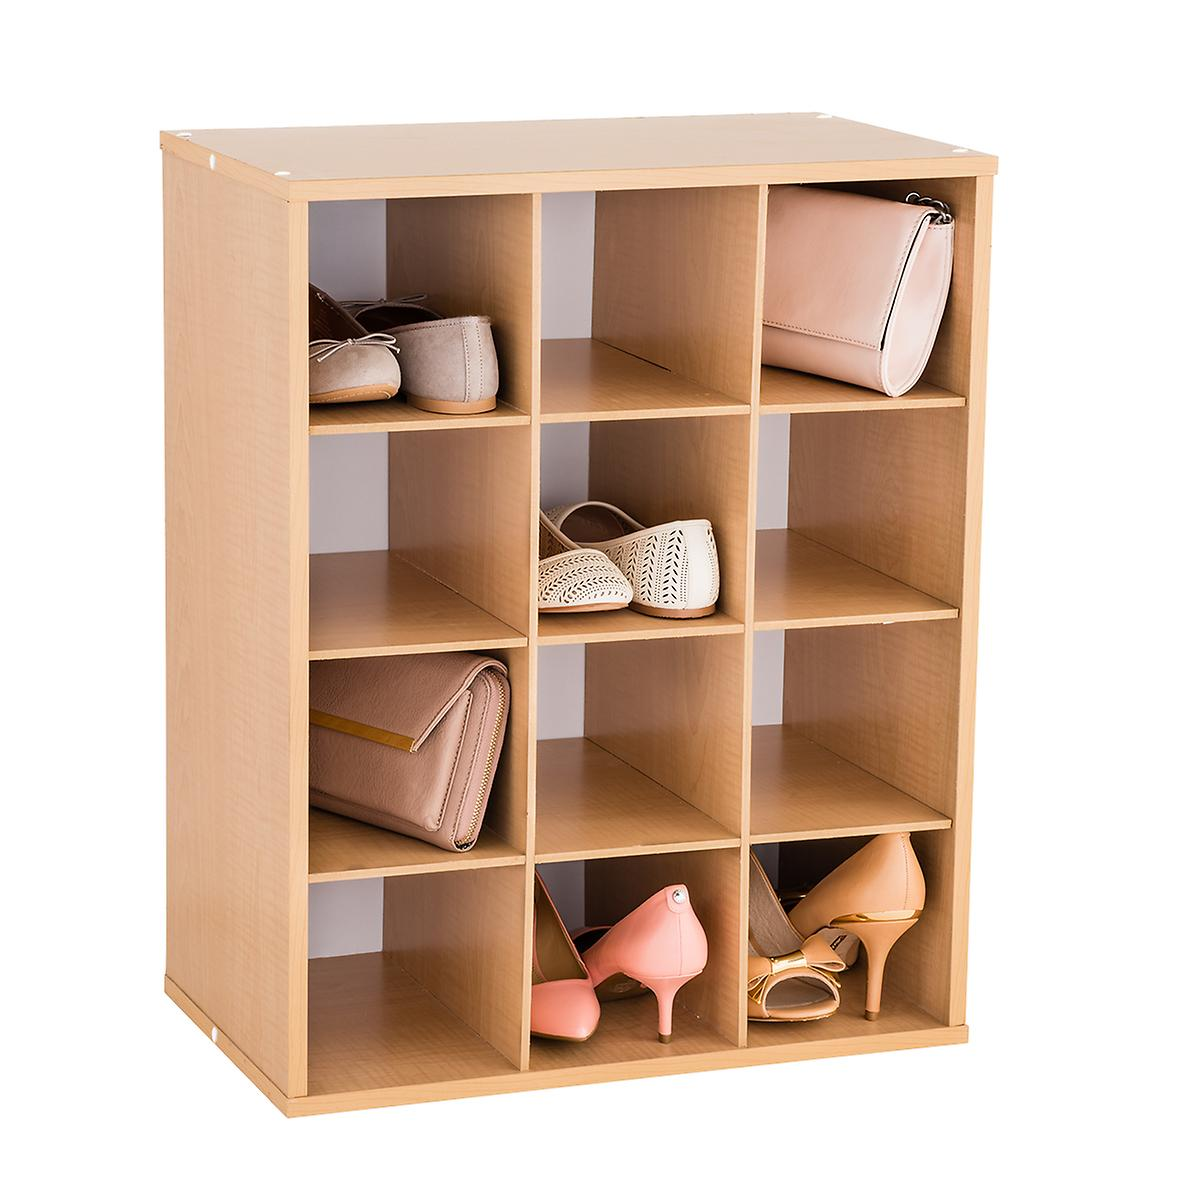 12 Pair Shoe Organizer The Container Store